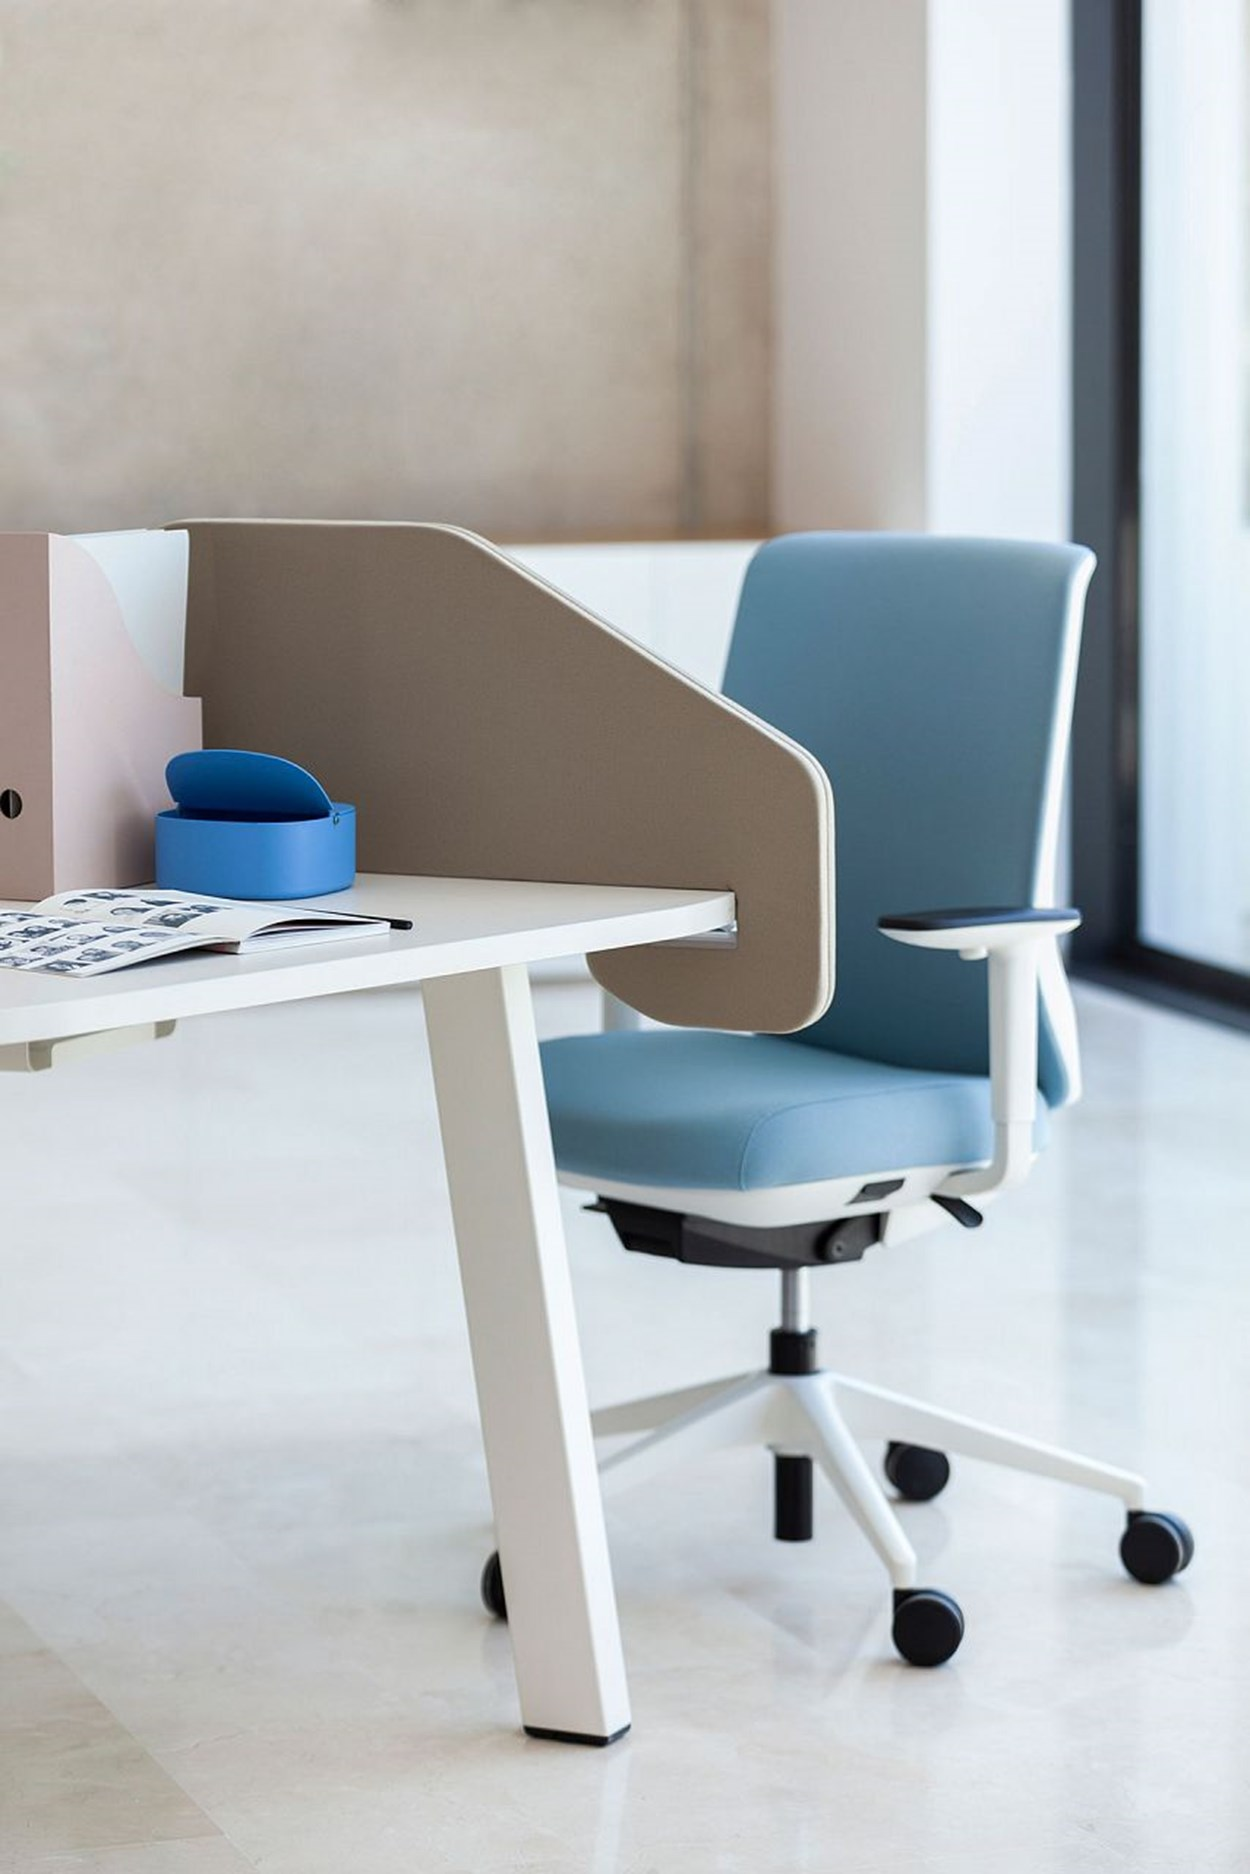 actiu-trim-50-office-chair-7.jpg